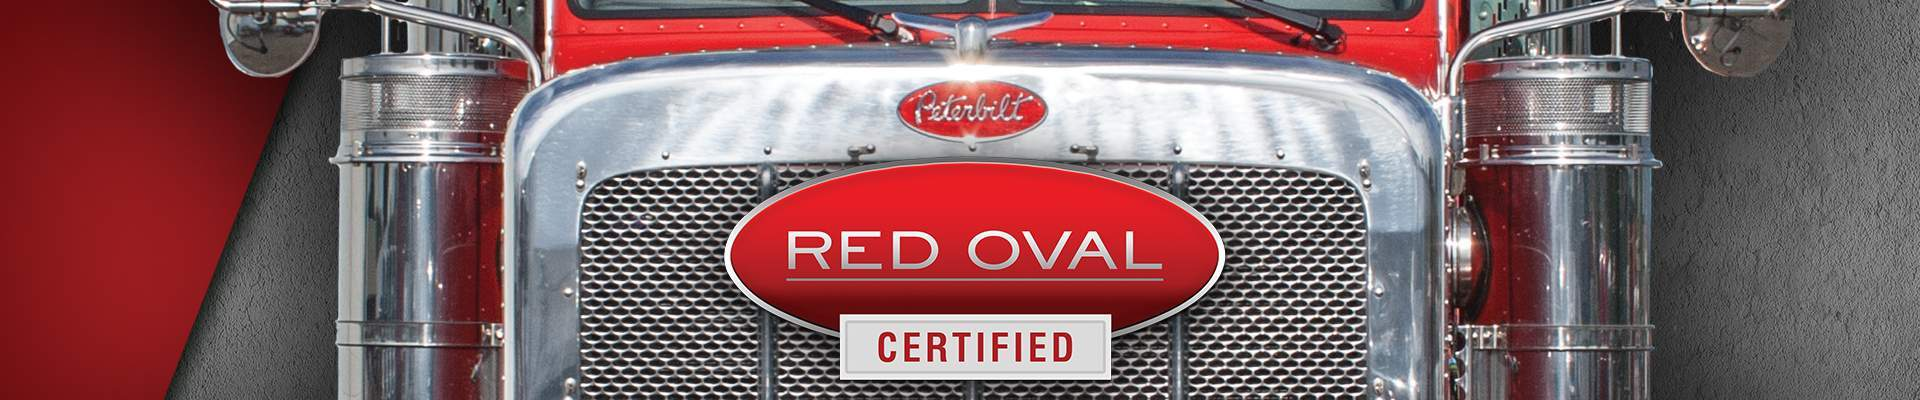 Red Oval Trucks